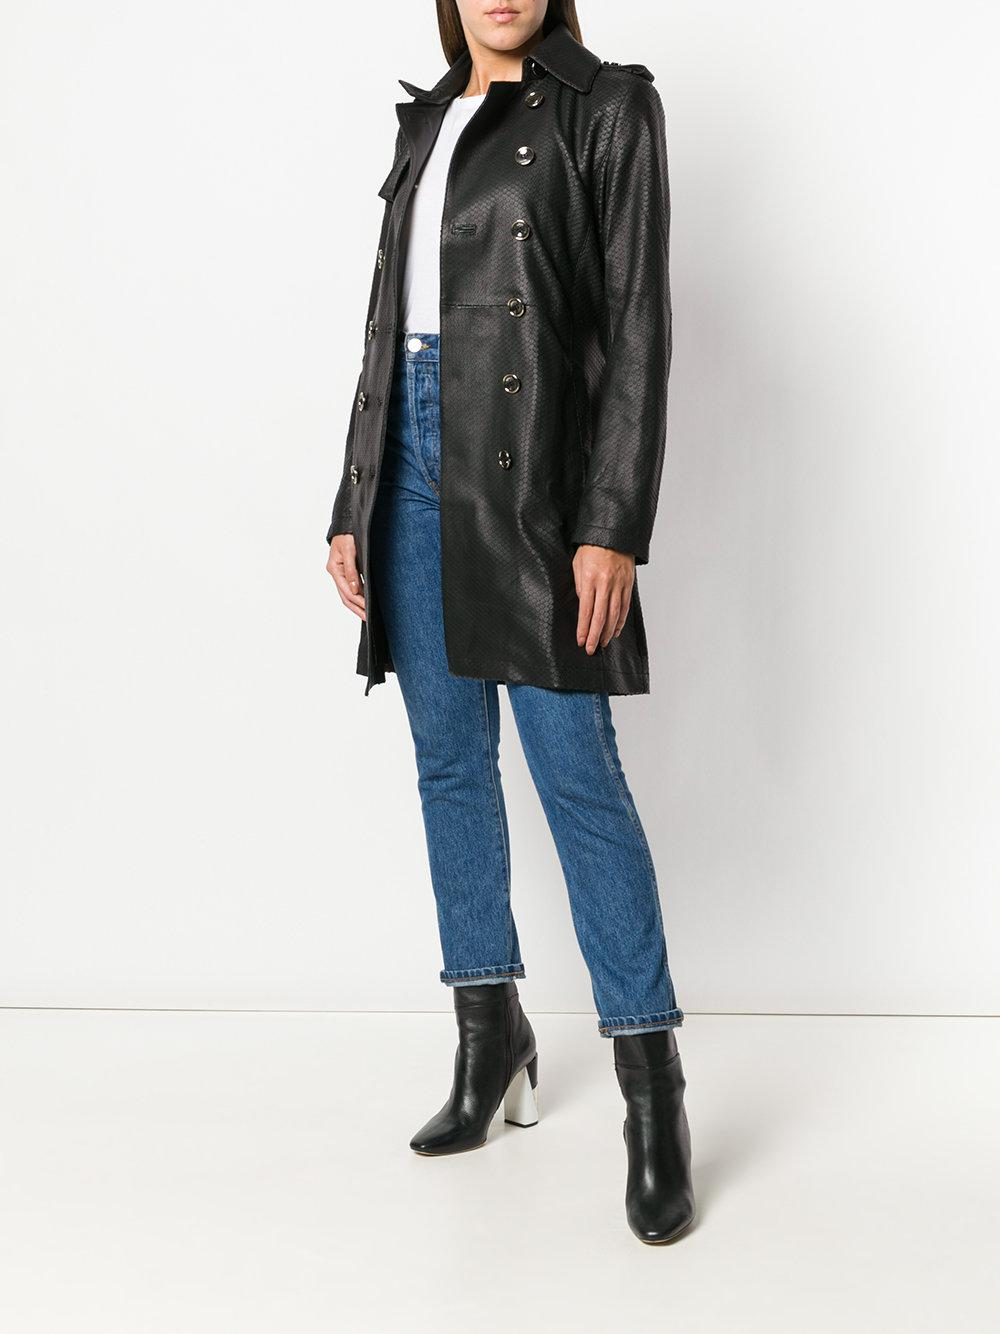 lowest price f5c34 ab862 Patrizia Pepe Snake-effect Trench Coat in Black - Lyst